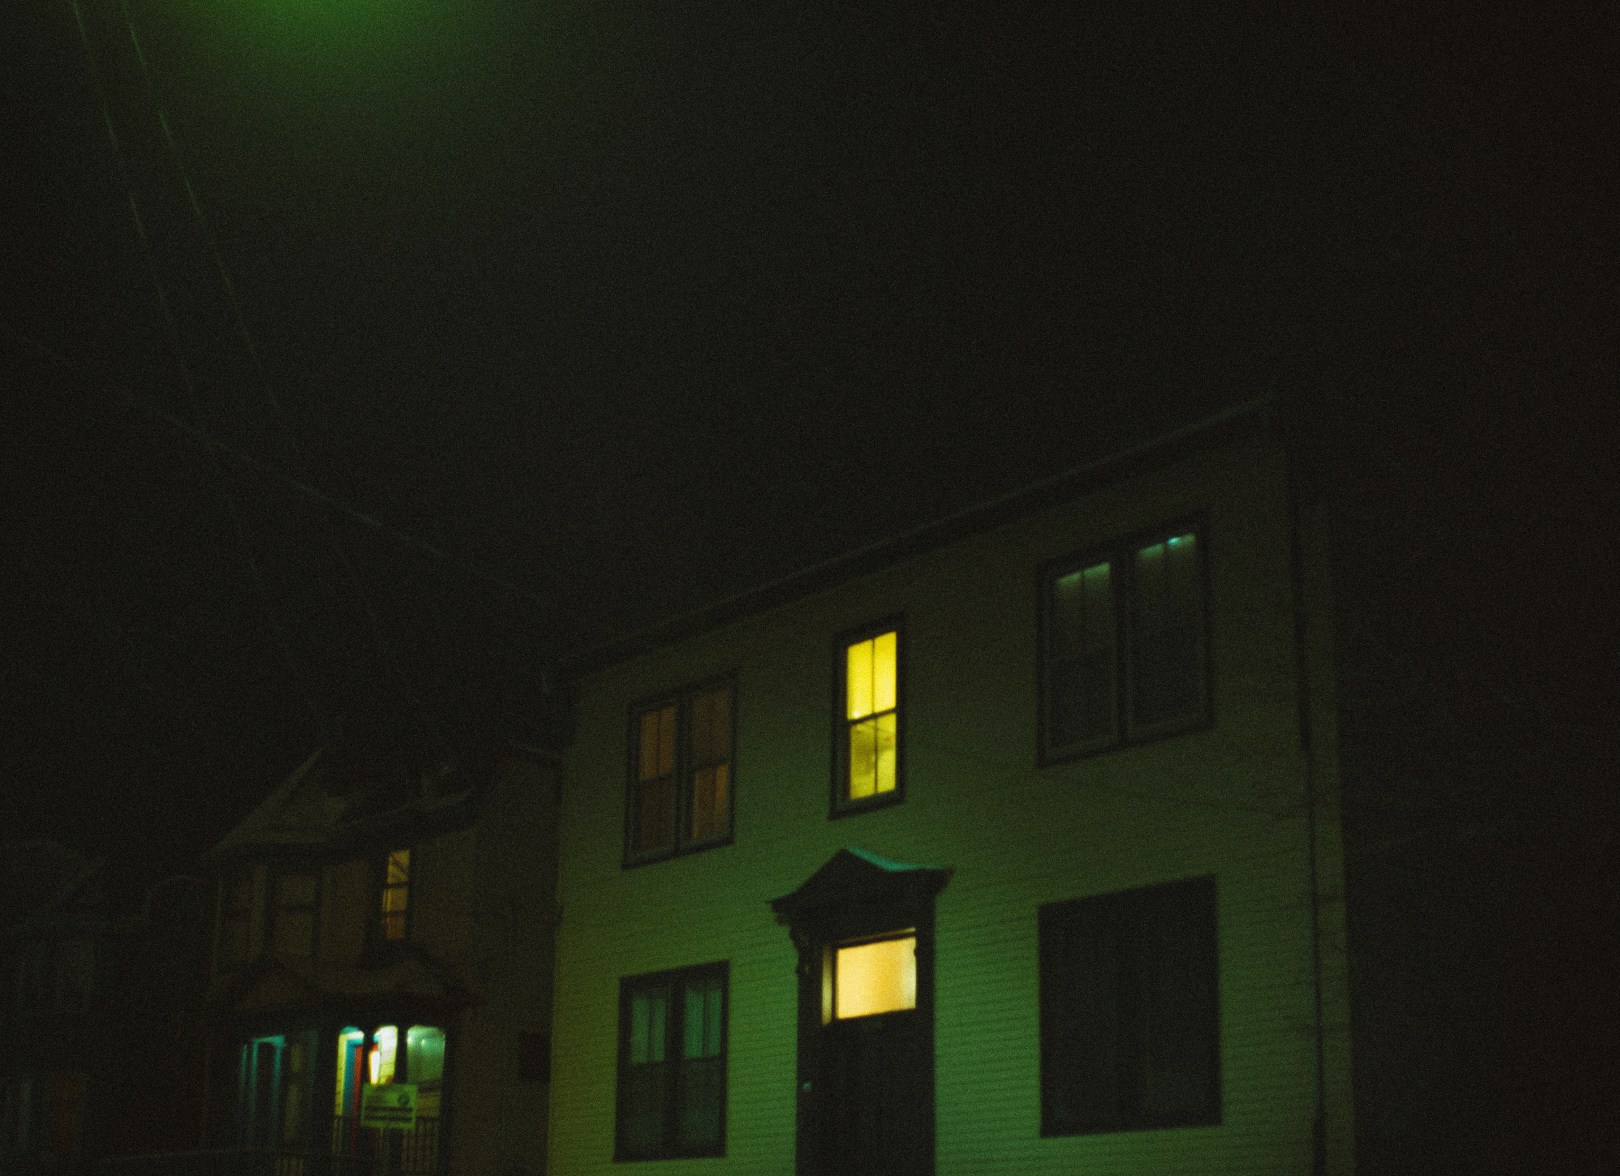 A photo of South Side house at night